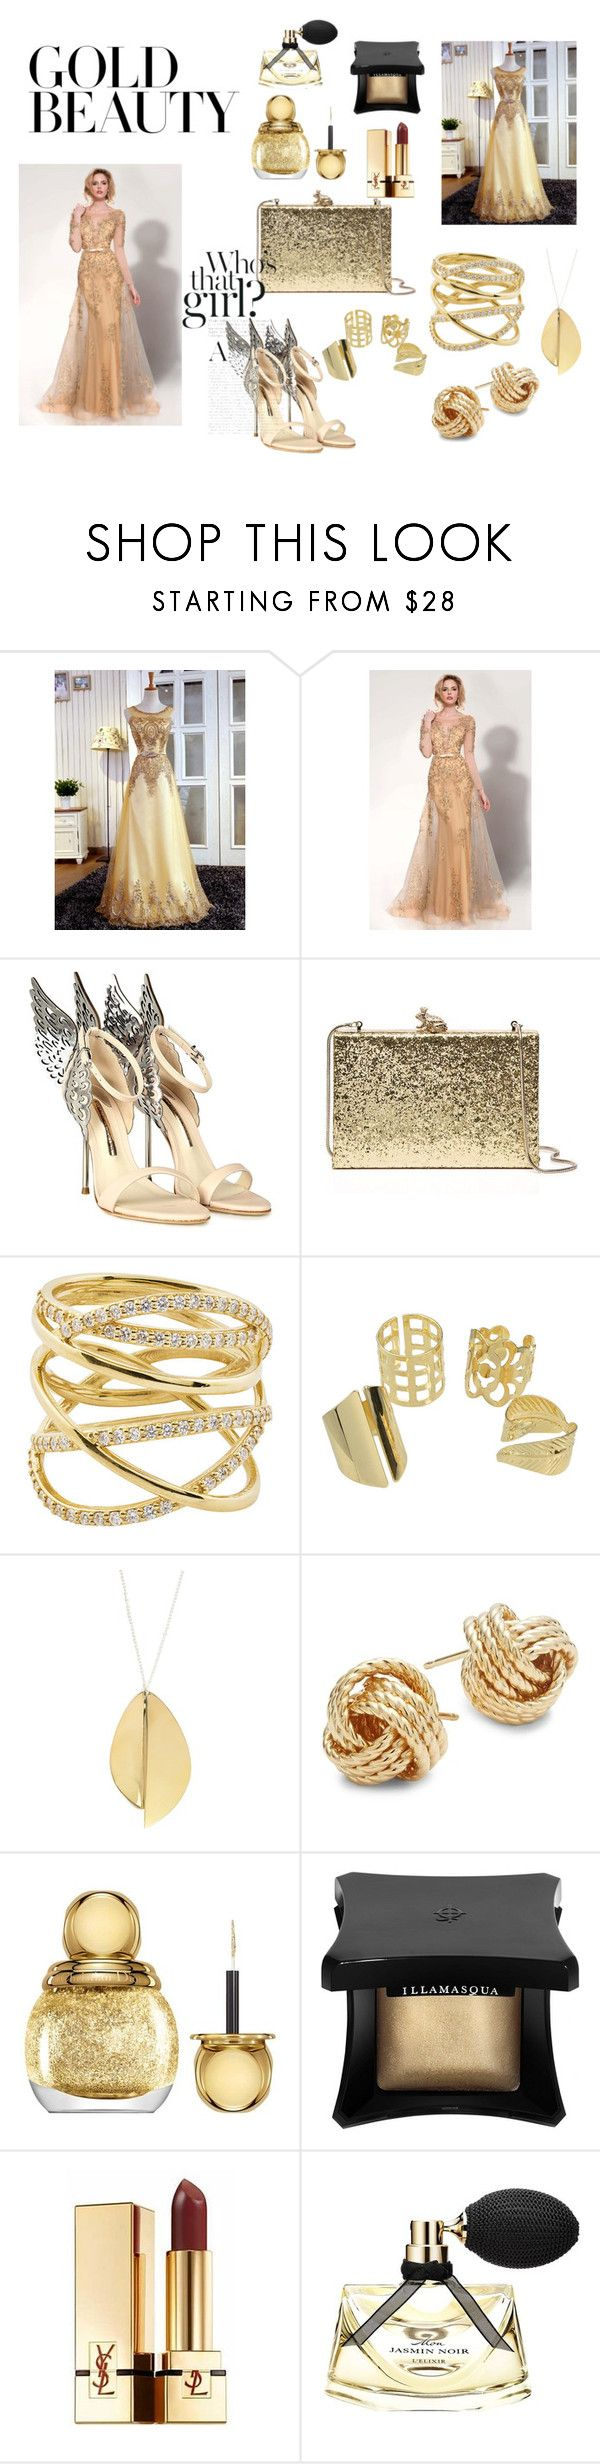 """""""Untitled #35"""" by ajladelicc ❤ liked on Polyvore featuring Sophia Webster, Kate Spade, Lana, Saks Fifth Avenue, Christian Dior, Illamasqua, Yves Saint Laurent and Bulgari"""